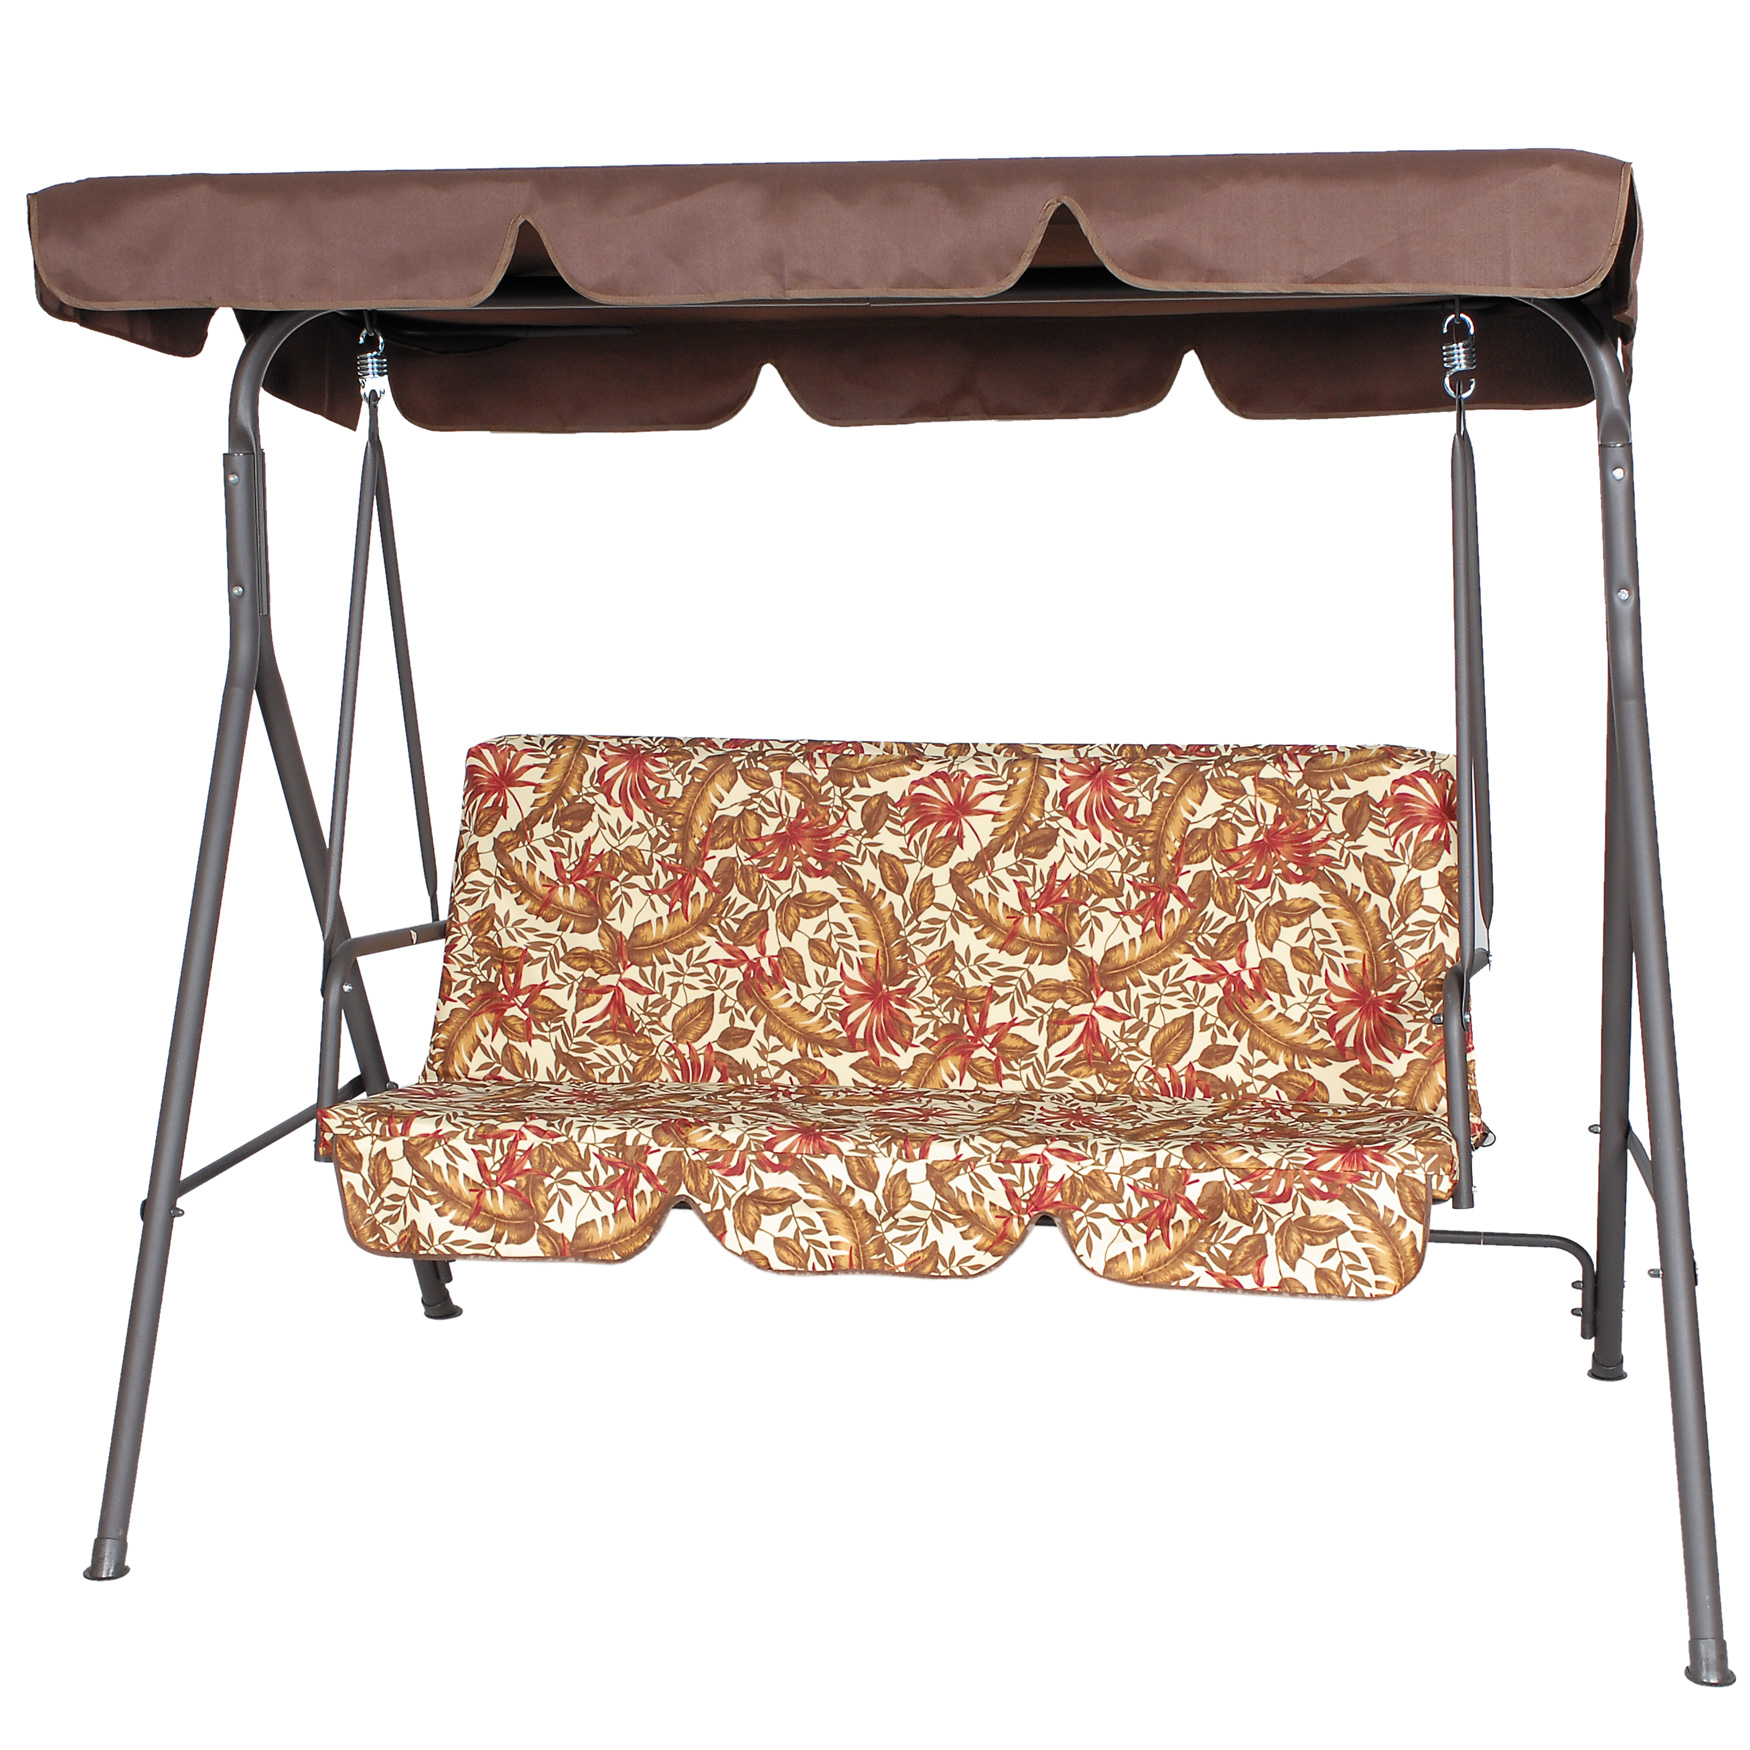 3 Seat Swing with Canopy, BEIGE SAGE RUST